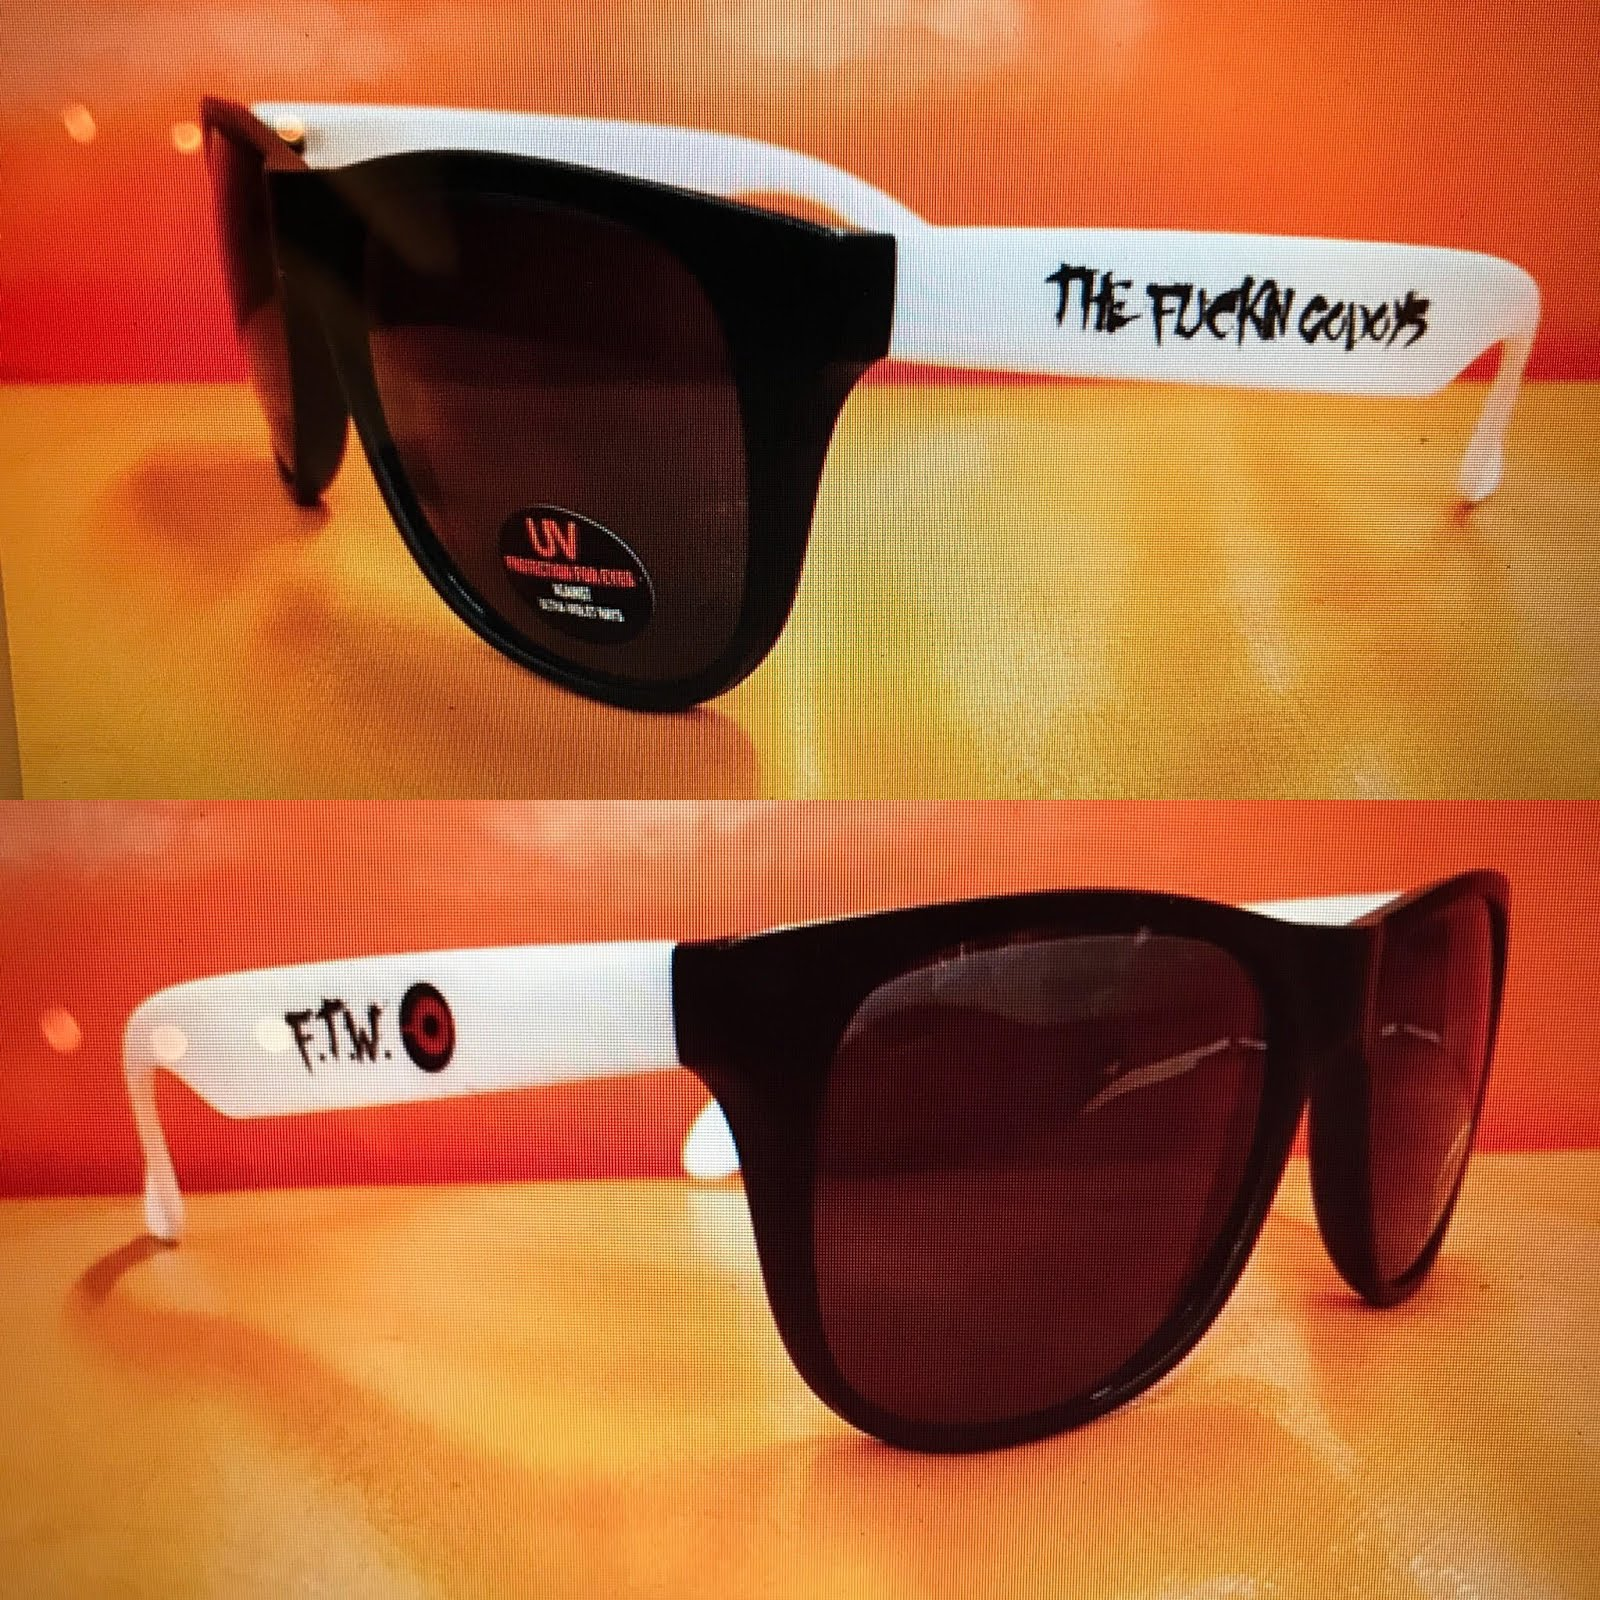 The Fuckin Godoys - FTW sunglasses.